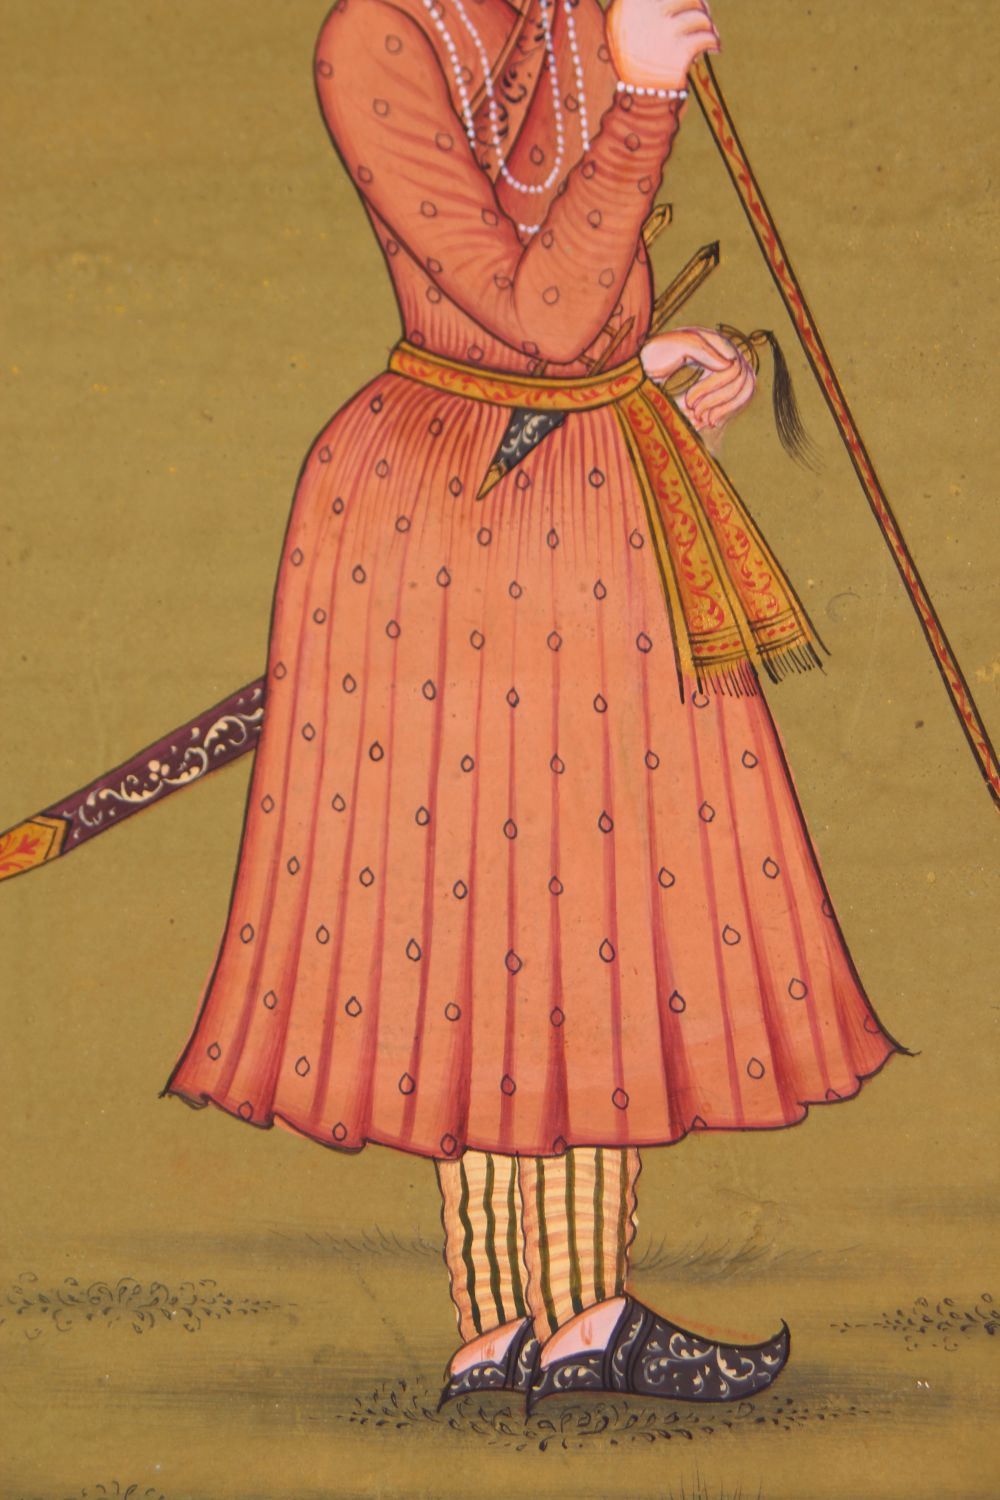 Lot 60 - A GOOD 19TH / 20TH CENTURY INDO PERSIAN MUGHAL ART HAND PAINTED PICTURE ON PAPER, the picture